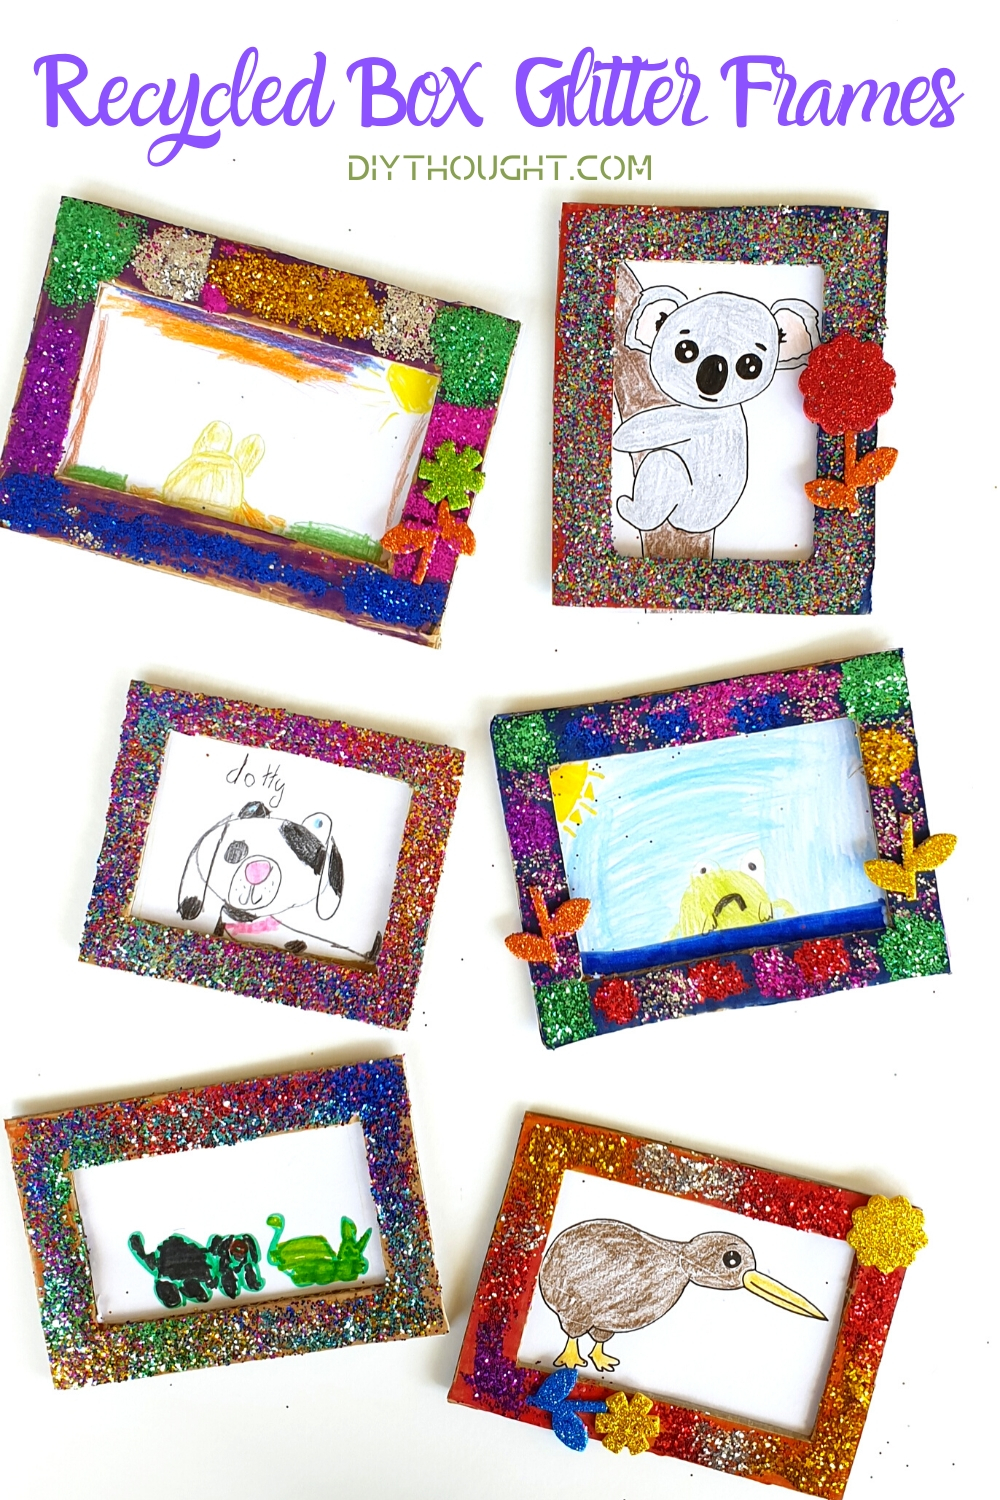 recycled box glitter frames